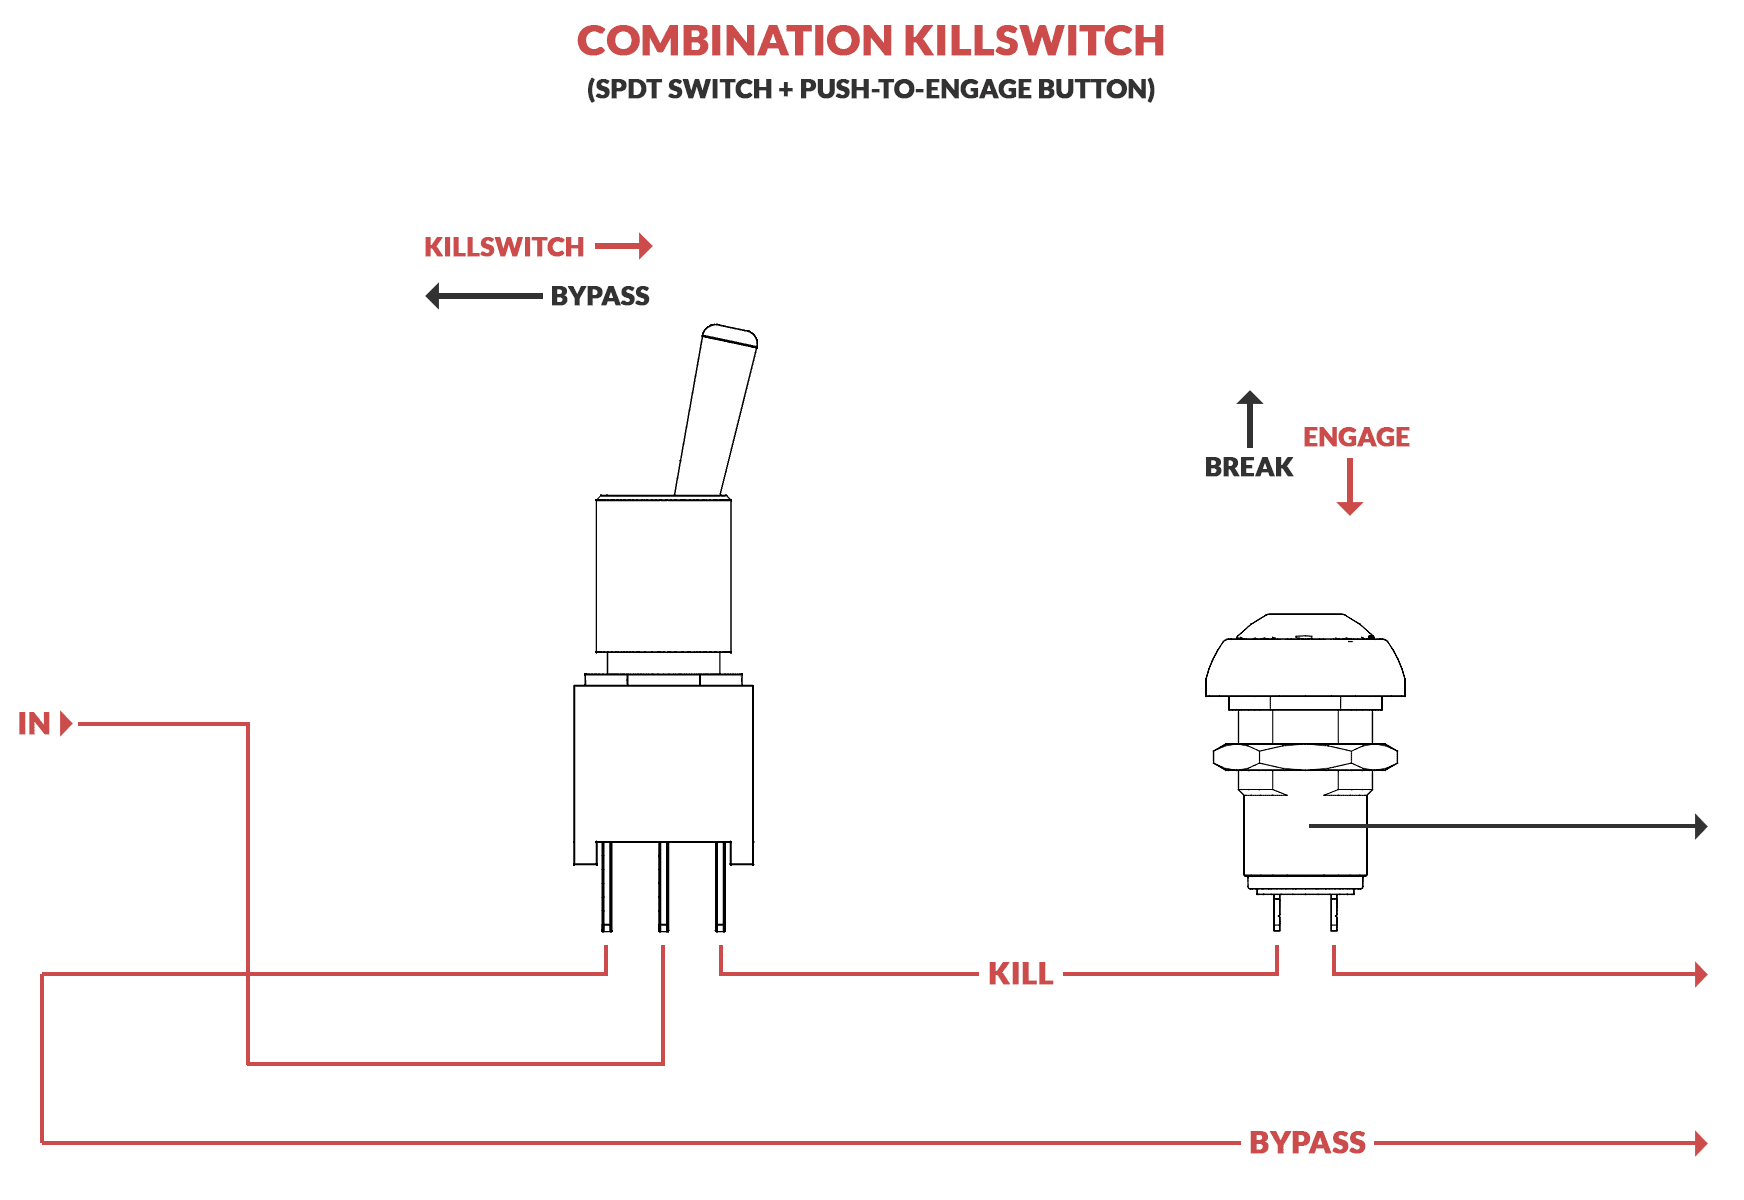 Switch Diagram Wiring : How to build a killswitch for your guitar electric herald